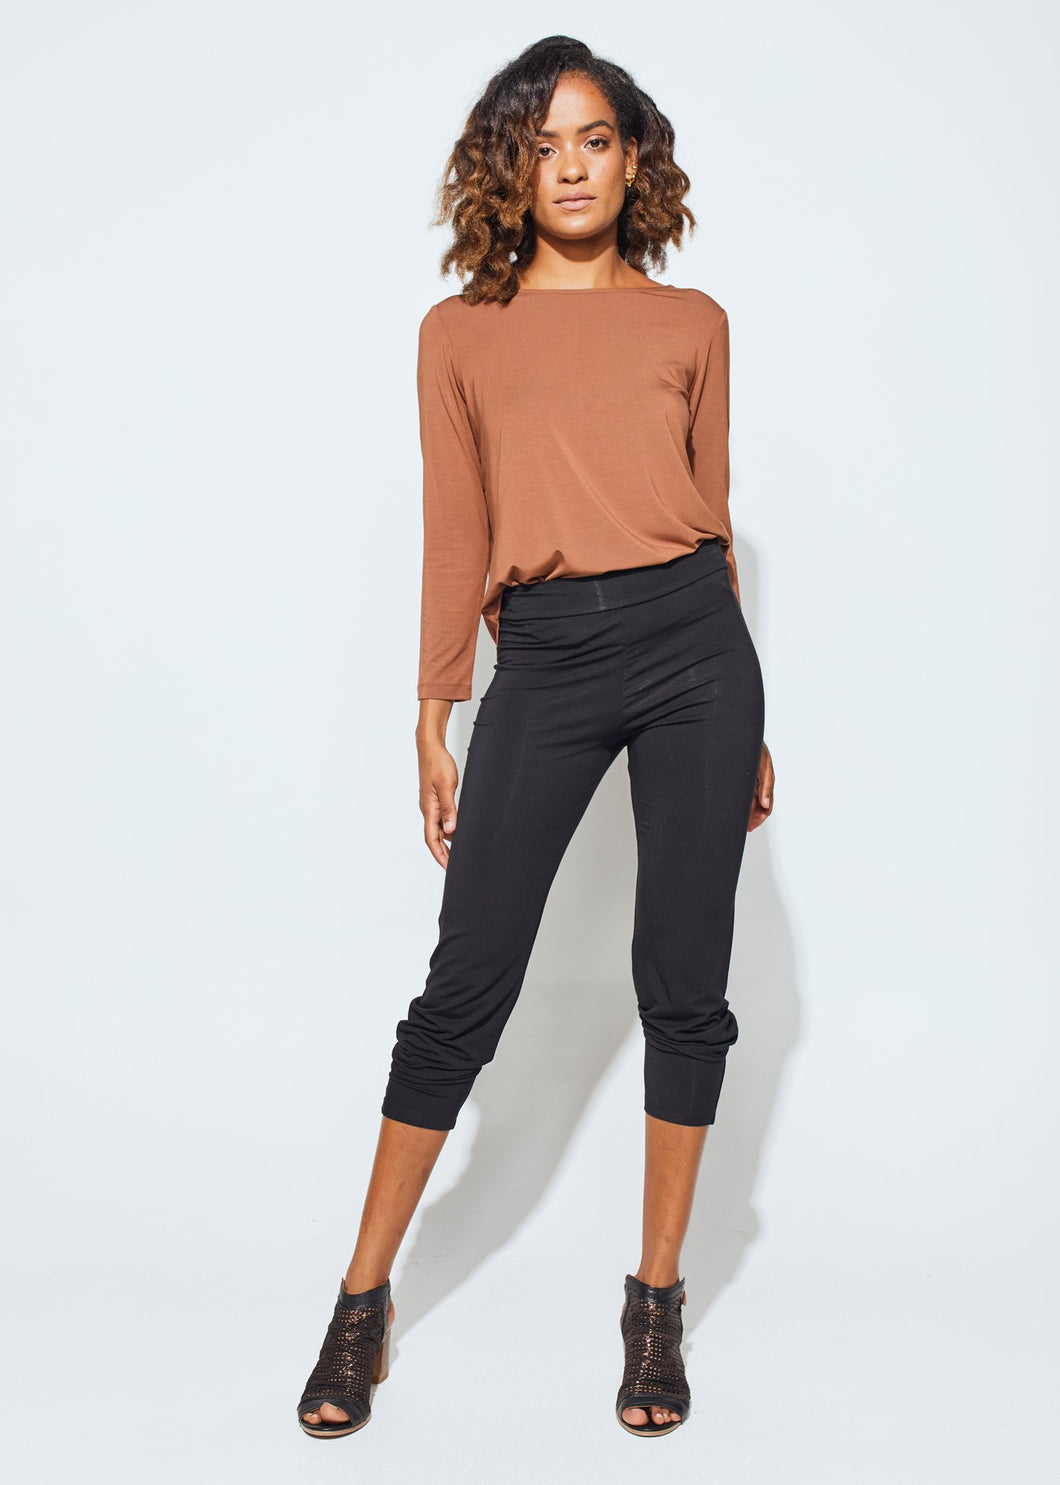 Lou Lou Australia The Keys Pant BLACK